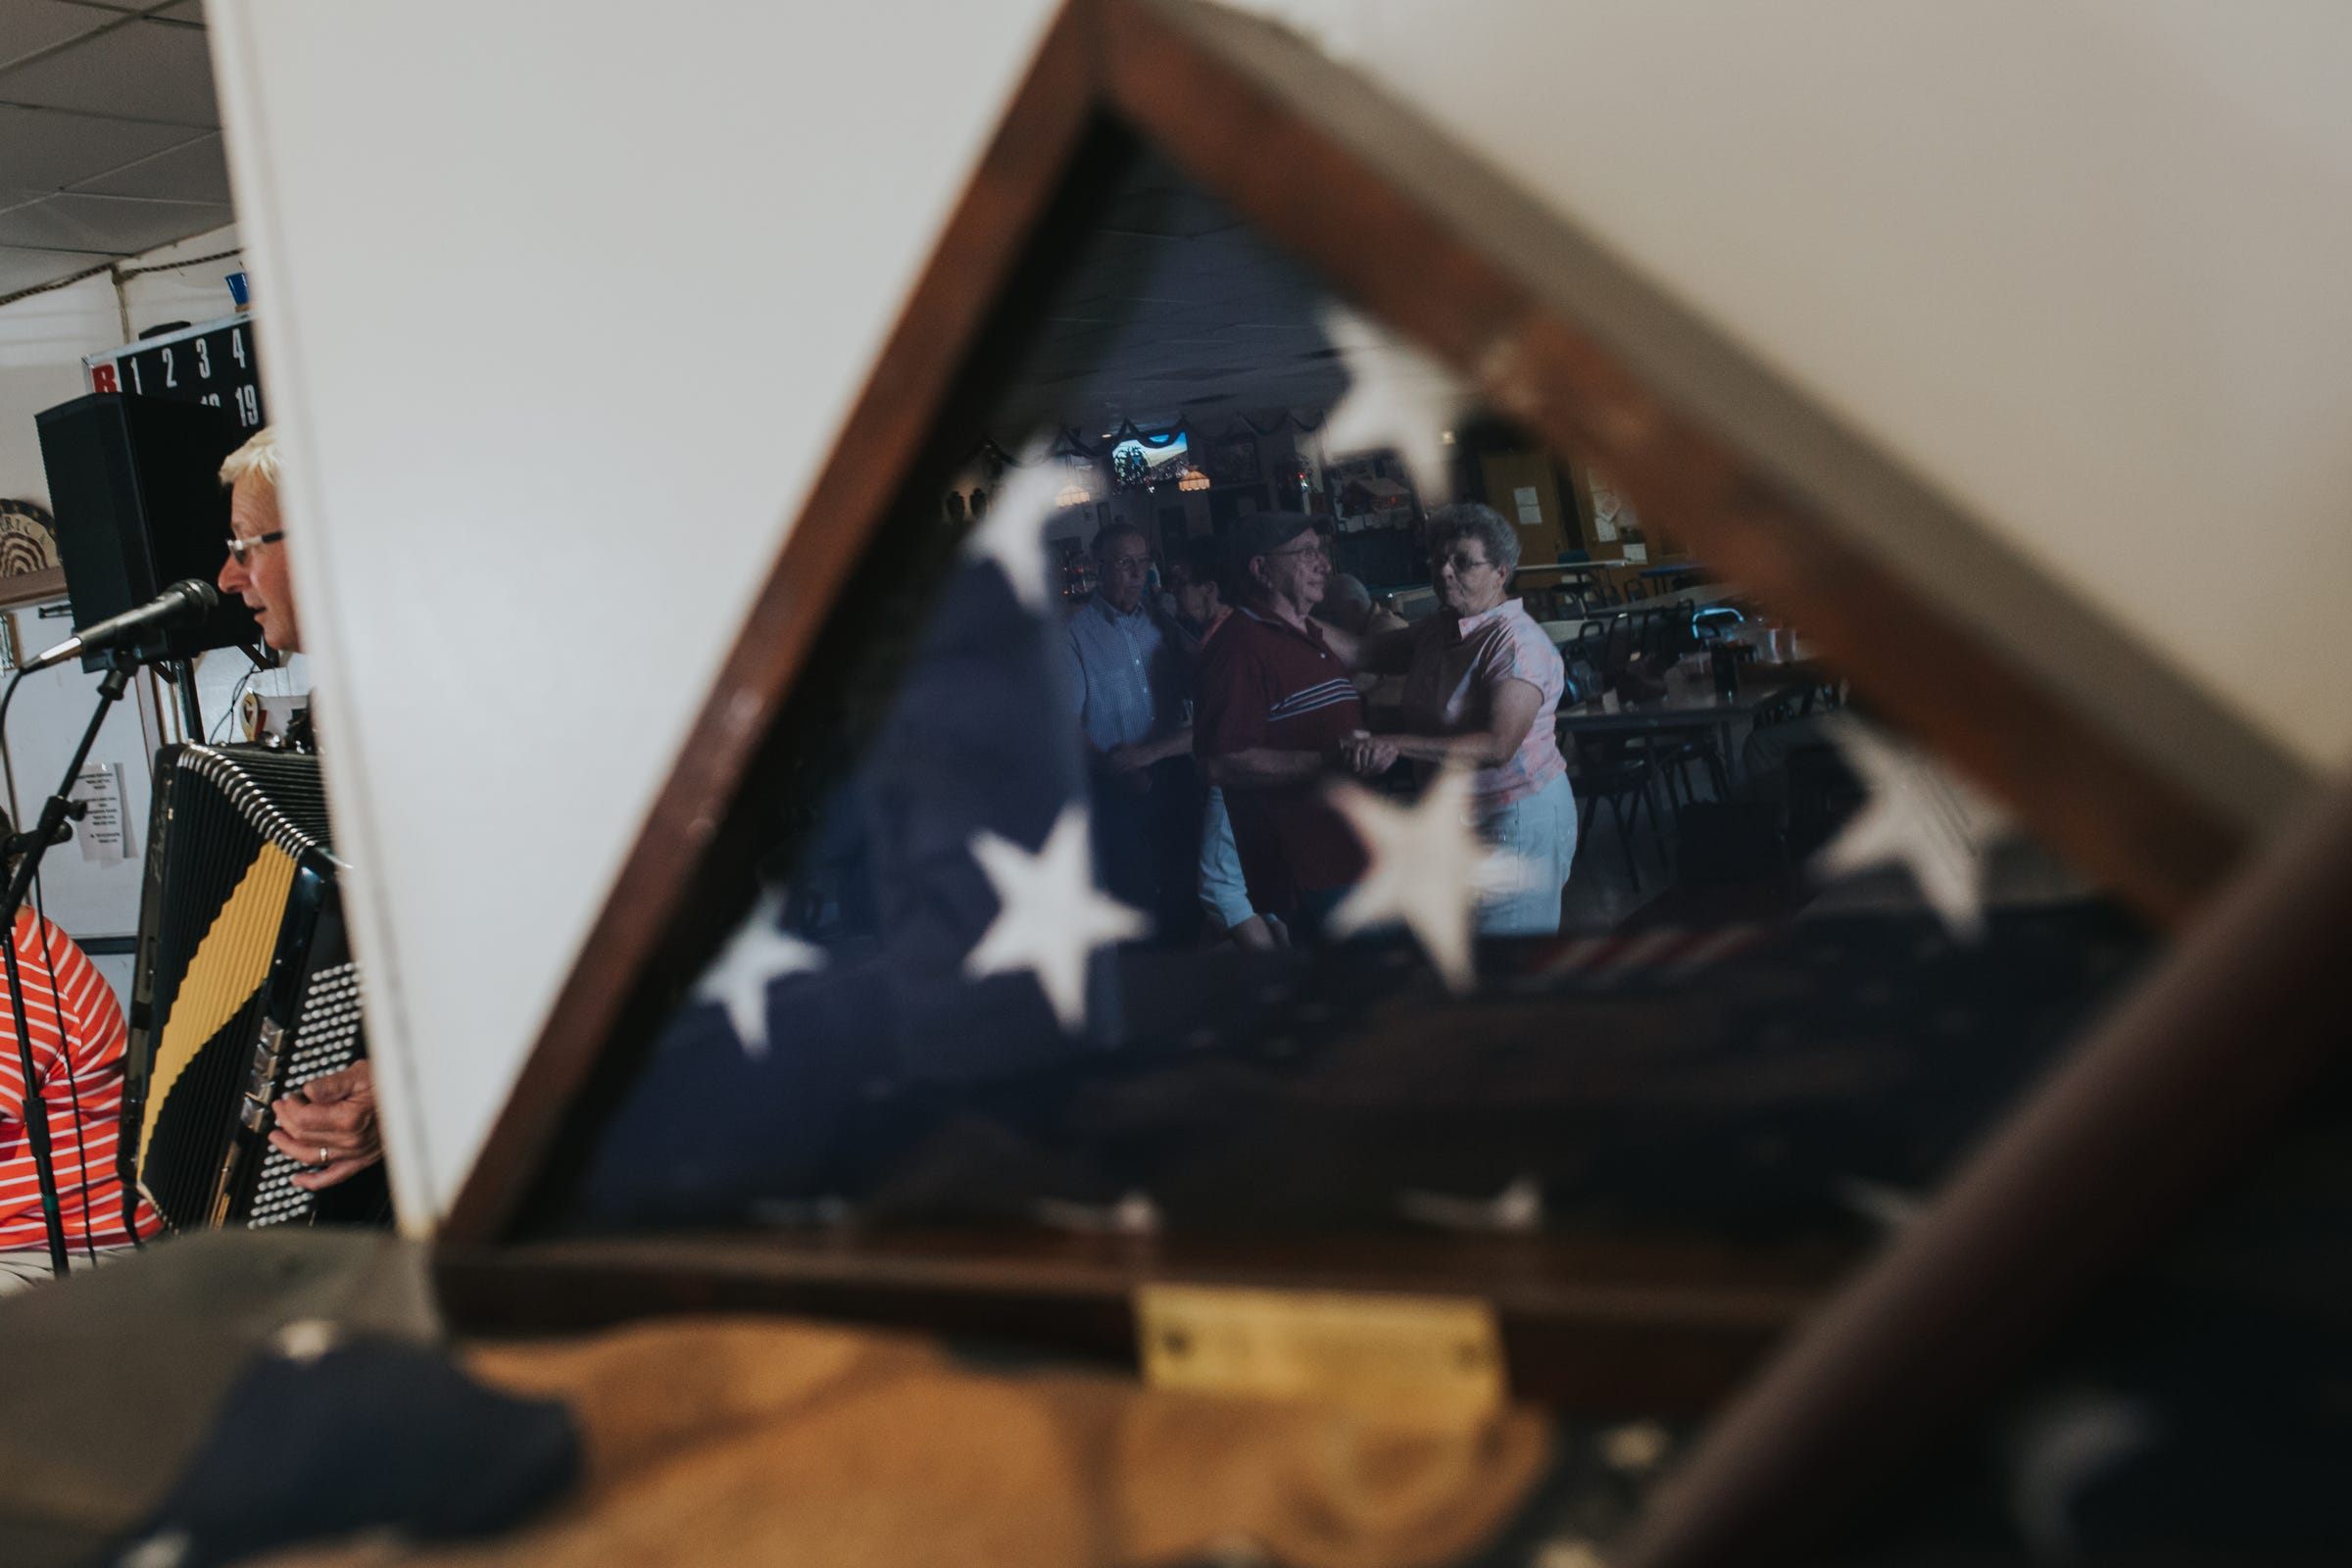 Dancers are reflected in a flag's display case during a weekly polka dance held at VFW Post 4573 in Ishpeming in Michigan's Upper Peninsula on Saturday, Aug. 19, 2017.